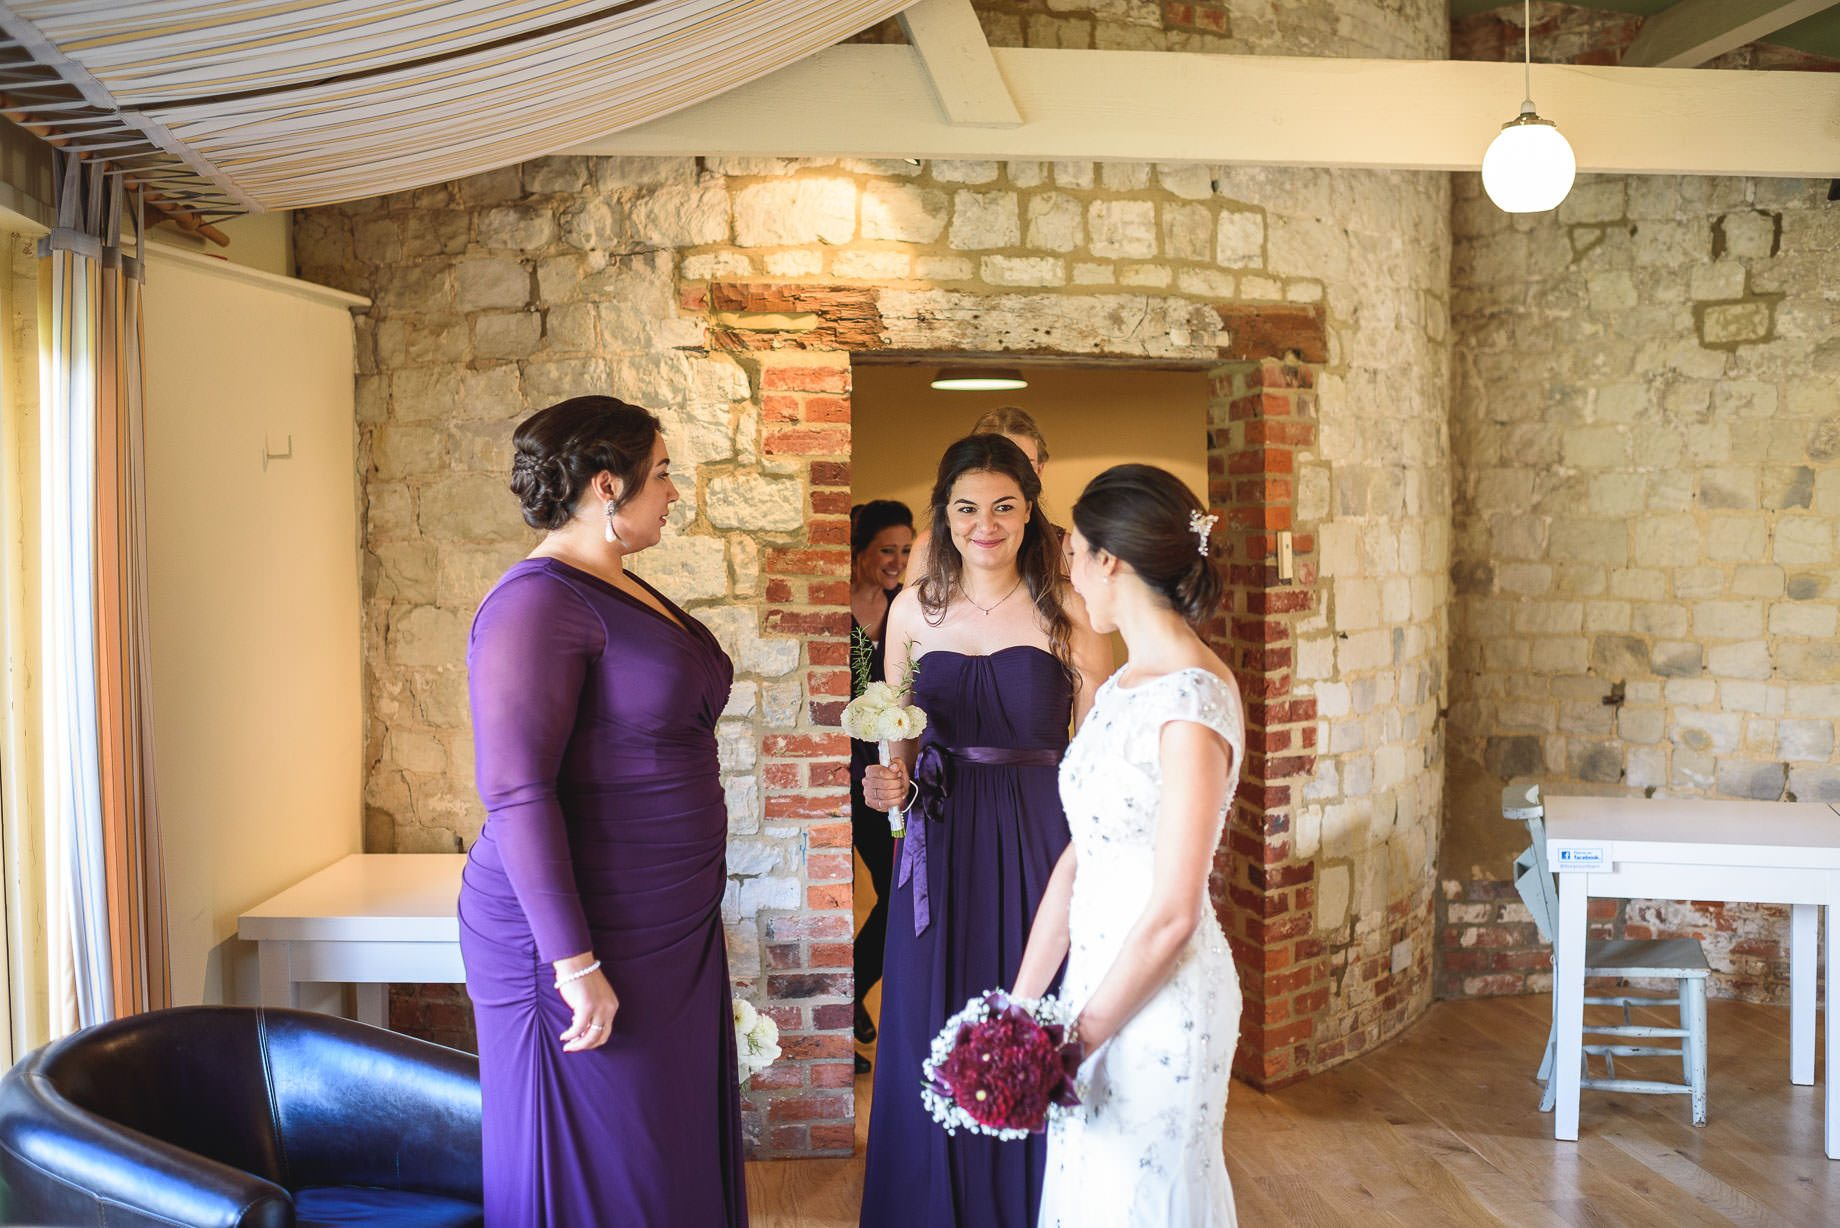 bury-court-barn-wedding-photography-guy-collier-photography-nadia-tom-47-of-184